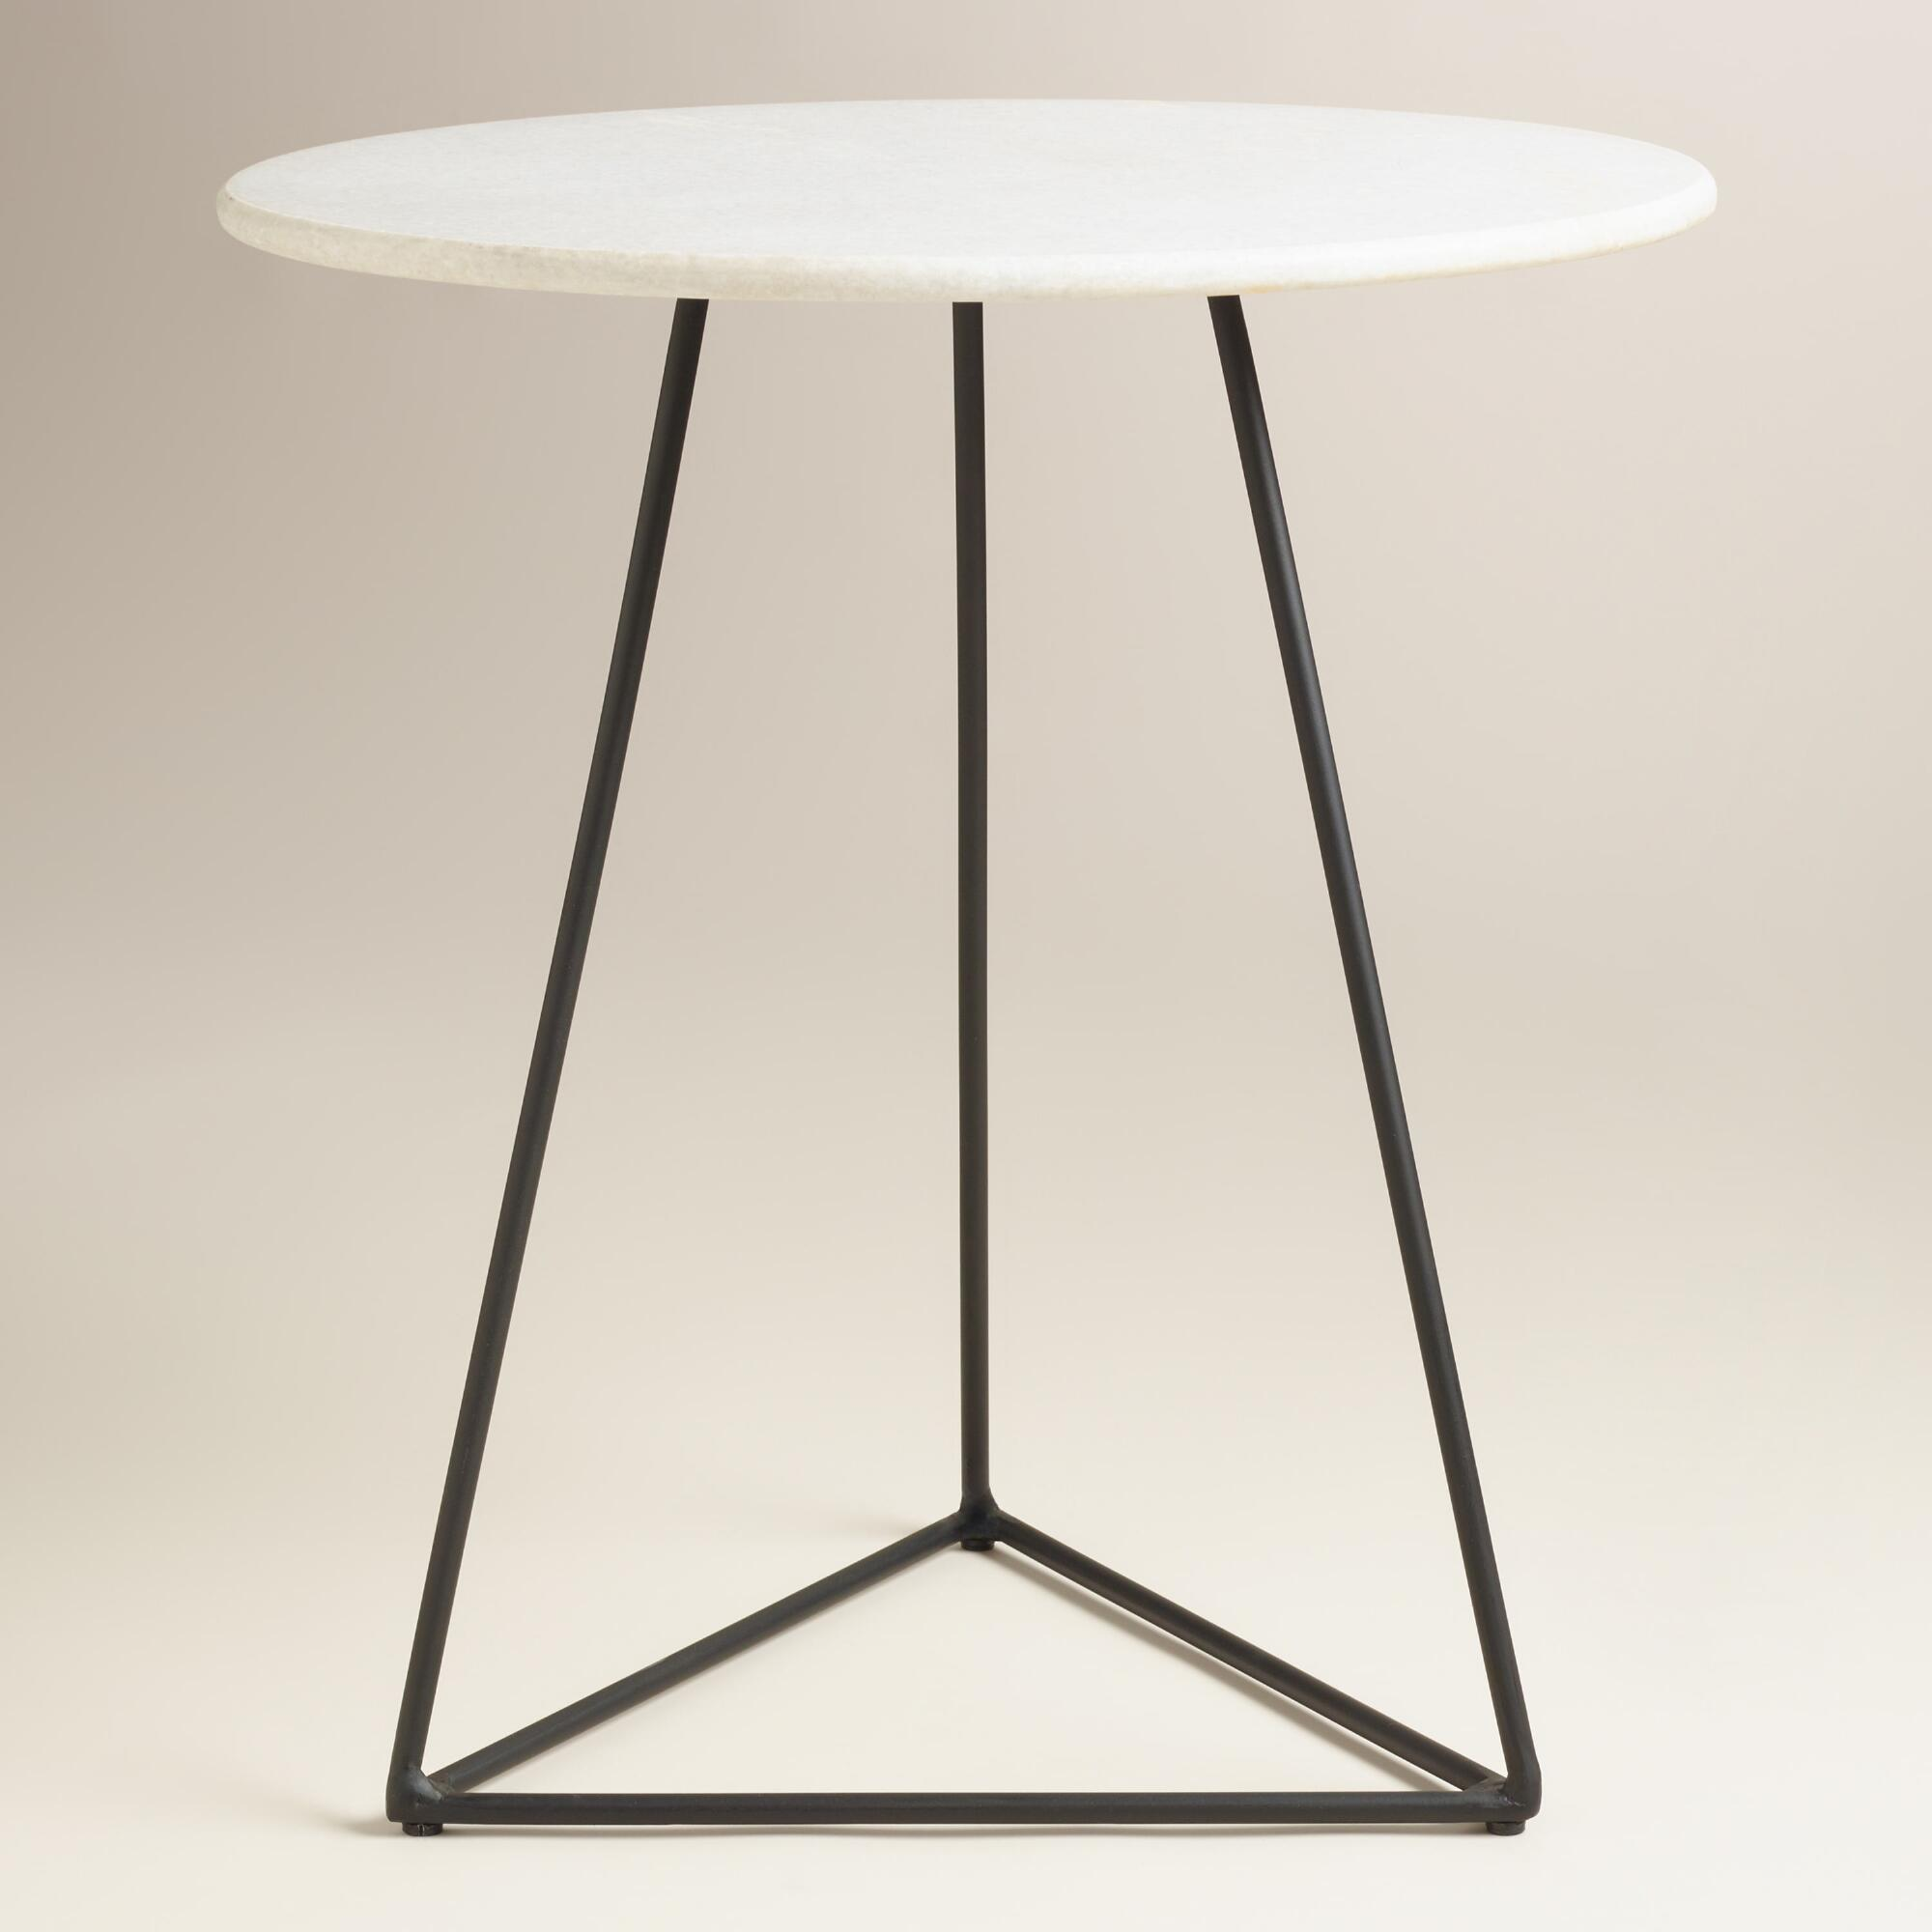 small round cover accent wooden decorating table unfinished white pedestal wood side faux tablecloth ideas covers threshold full size boss bass chorus with metal legs drum target